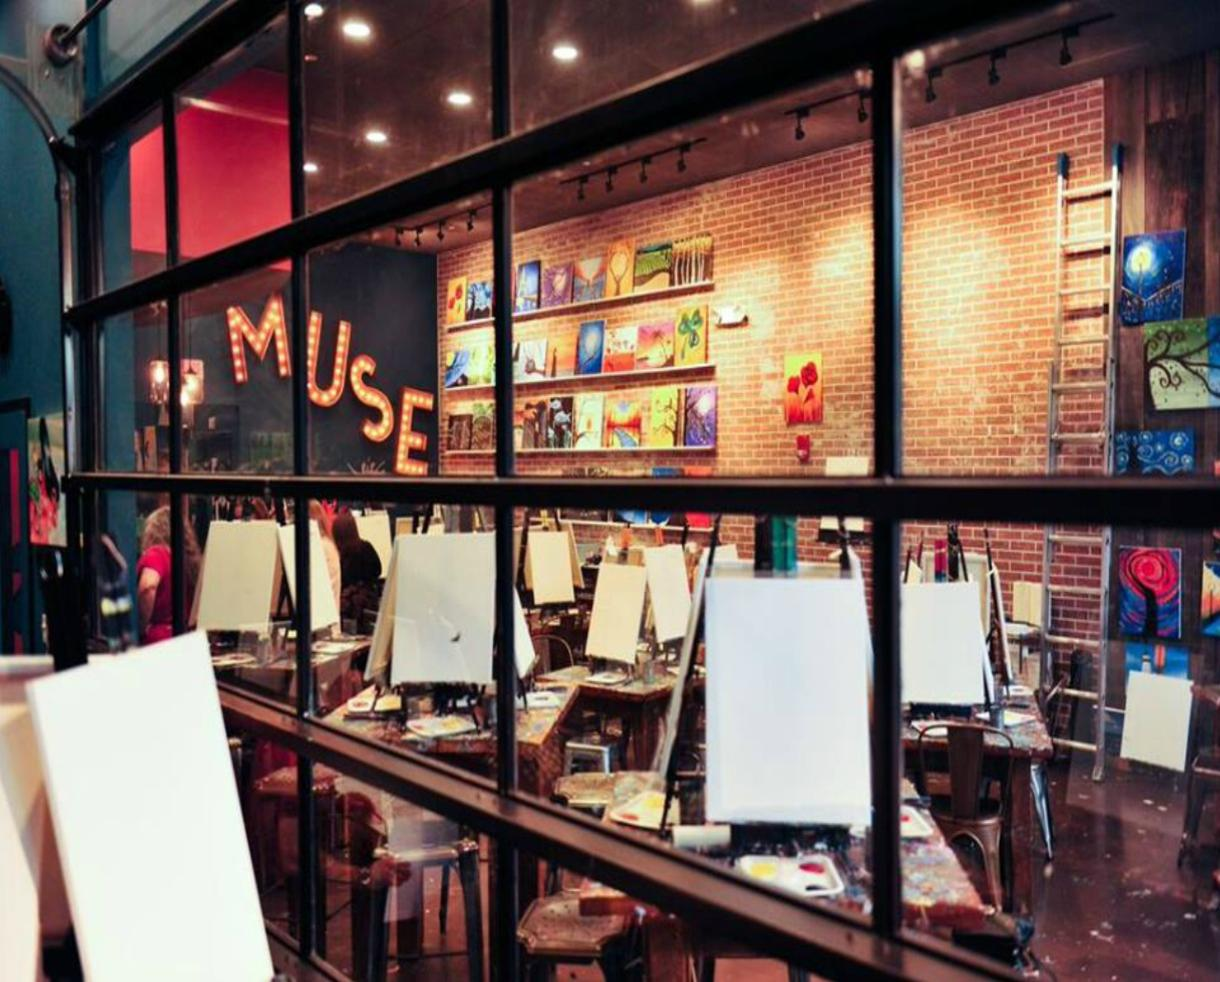 $19+ for Painting Session for One, Two or Four People - Kids or Adults! - at BRAND NEW Muse Paintbar National Harbor, MD or Gainesville, VA Locations + Party Option (Up to 54% Off)